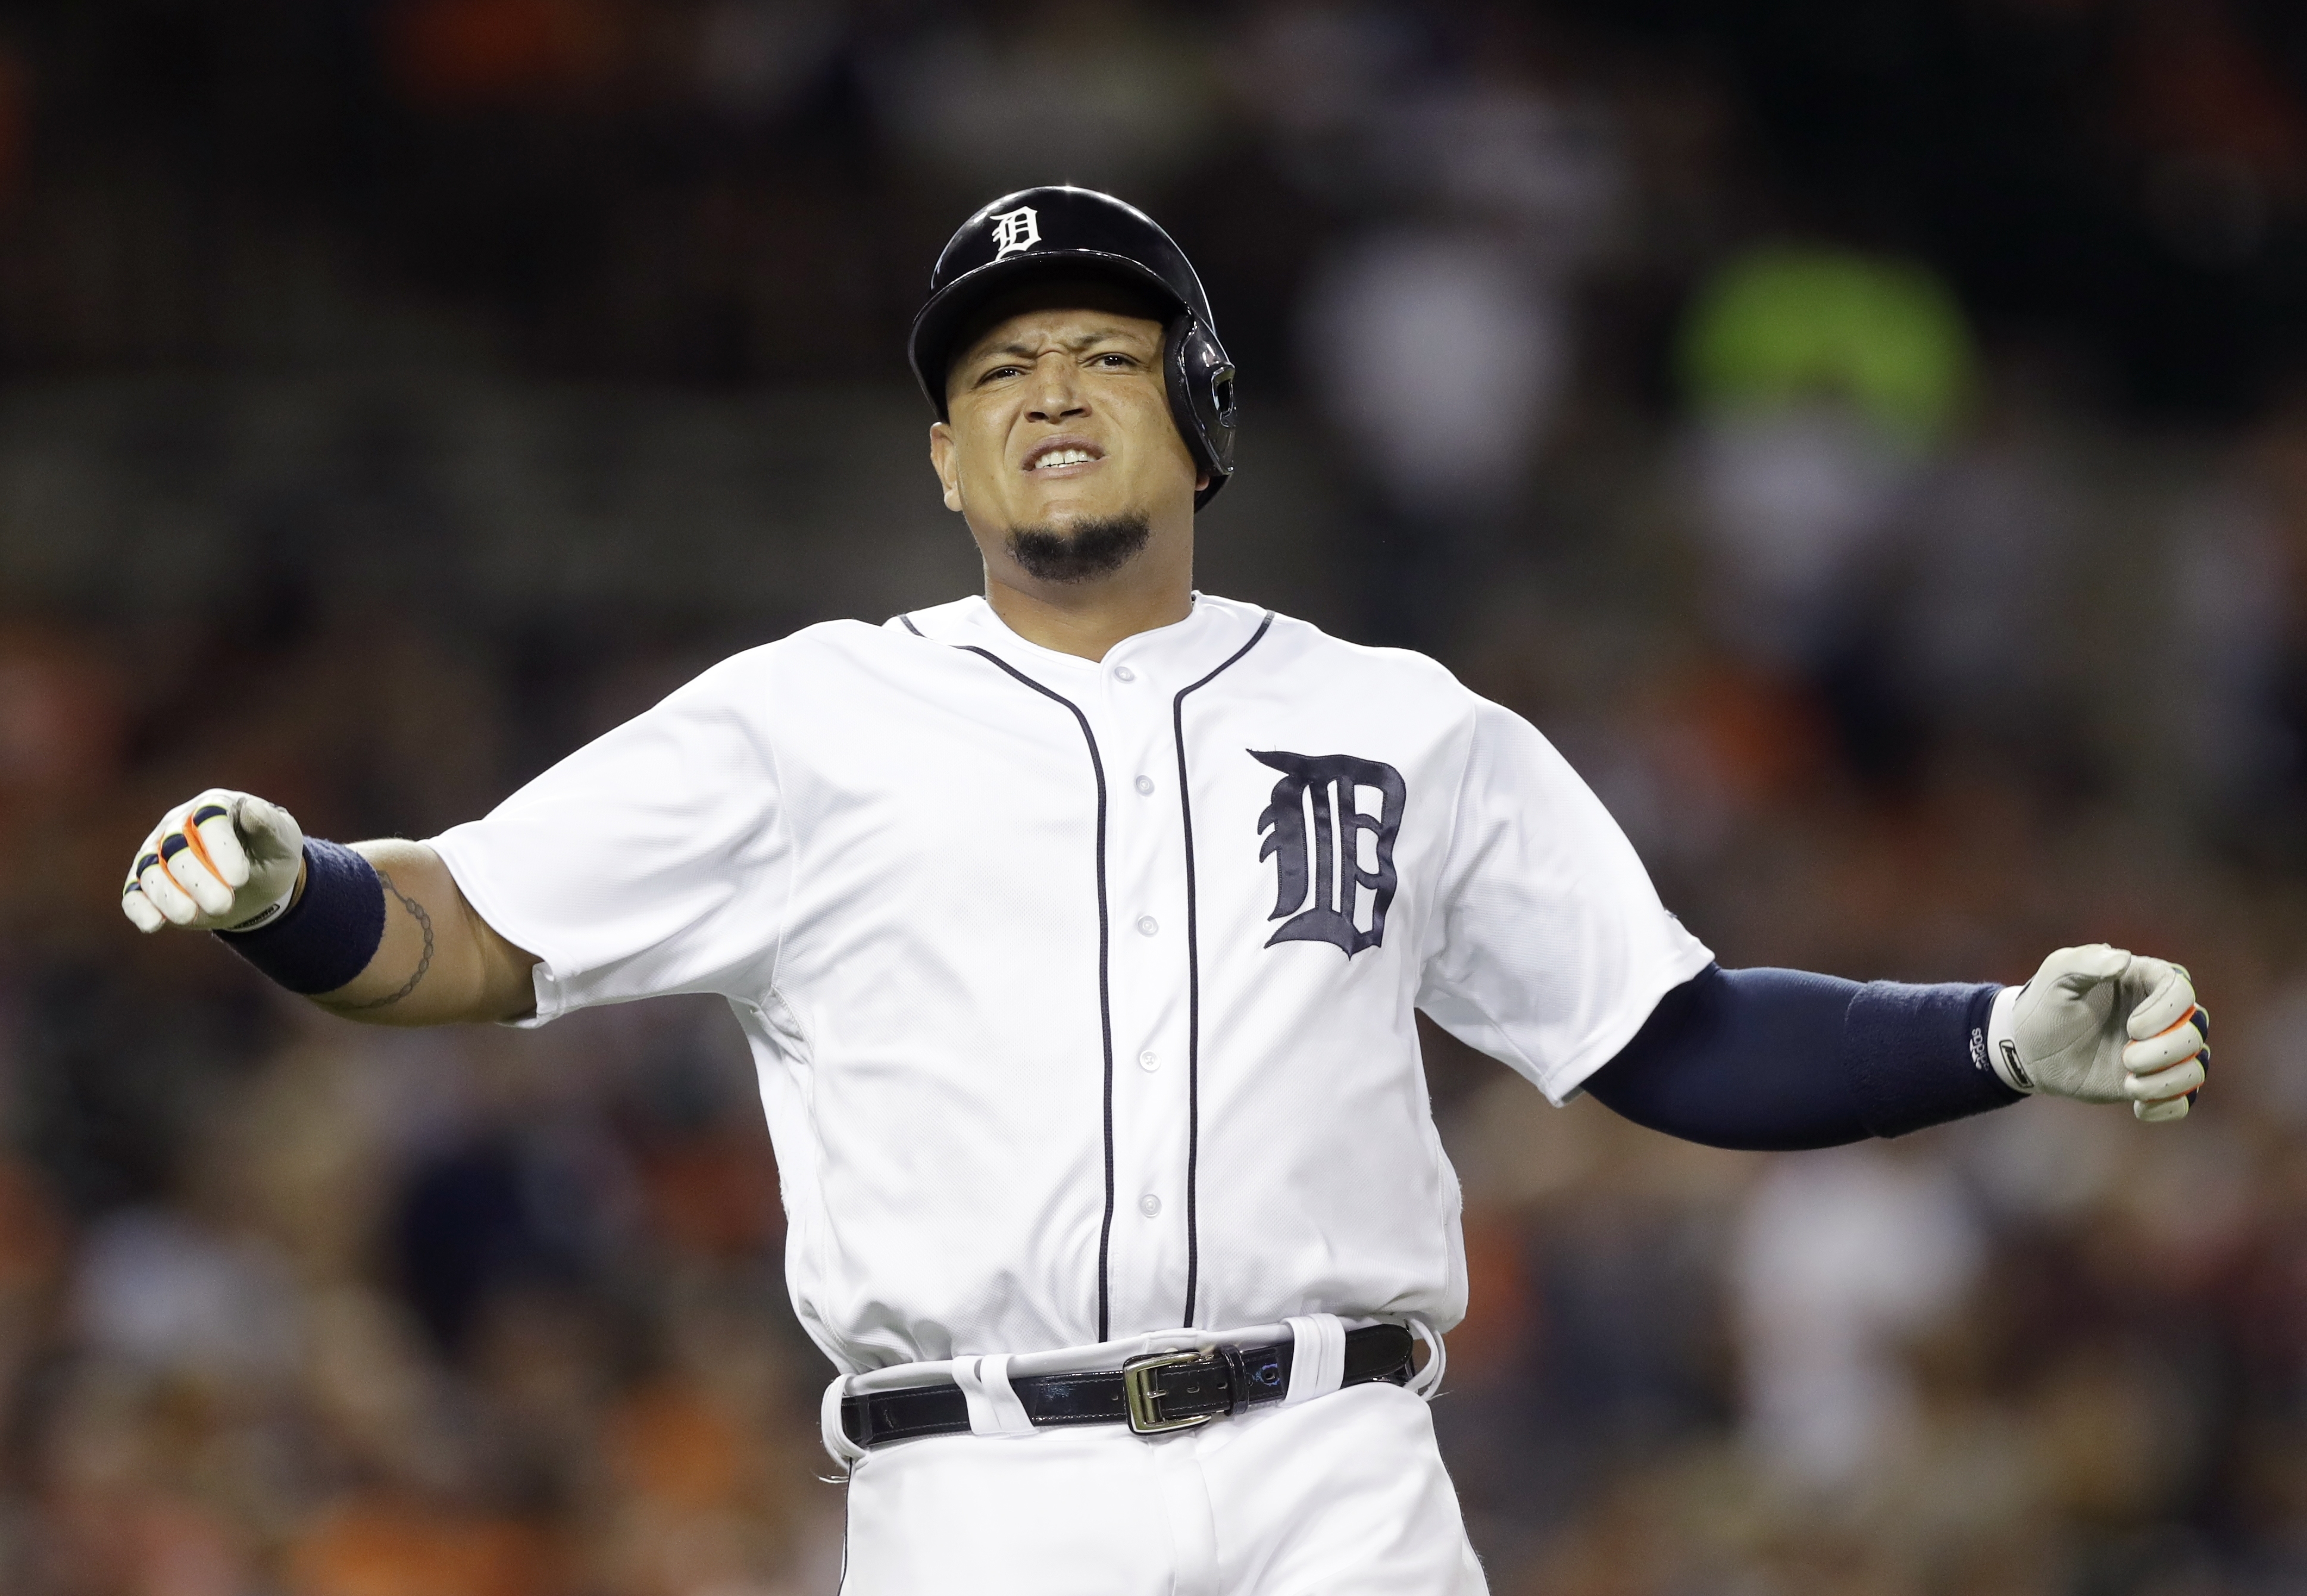 Detroit Tigers' Miguel Cabrera reacts after lining out during the fifth inning of a baseball game against the Chicago White Sox, Monday, Aug. 29, 2016, in Detroit. (AP Photo/Carlos Osorio)